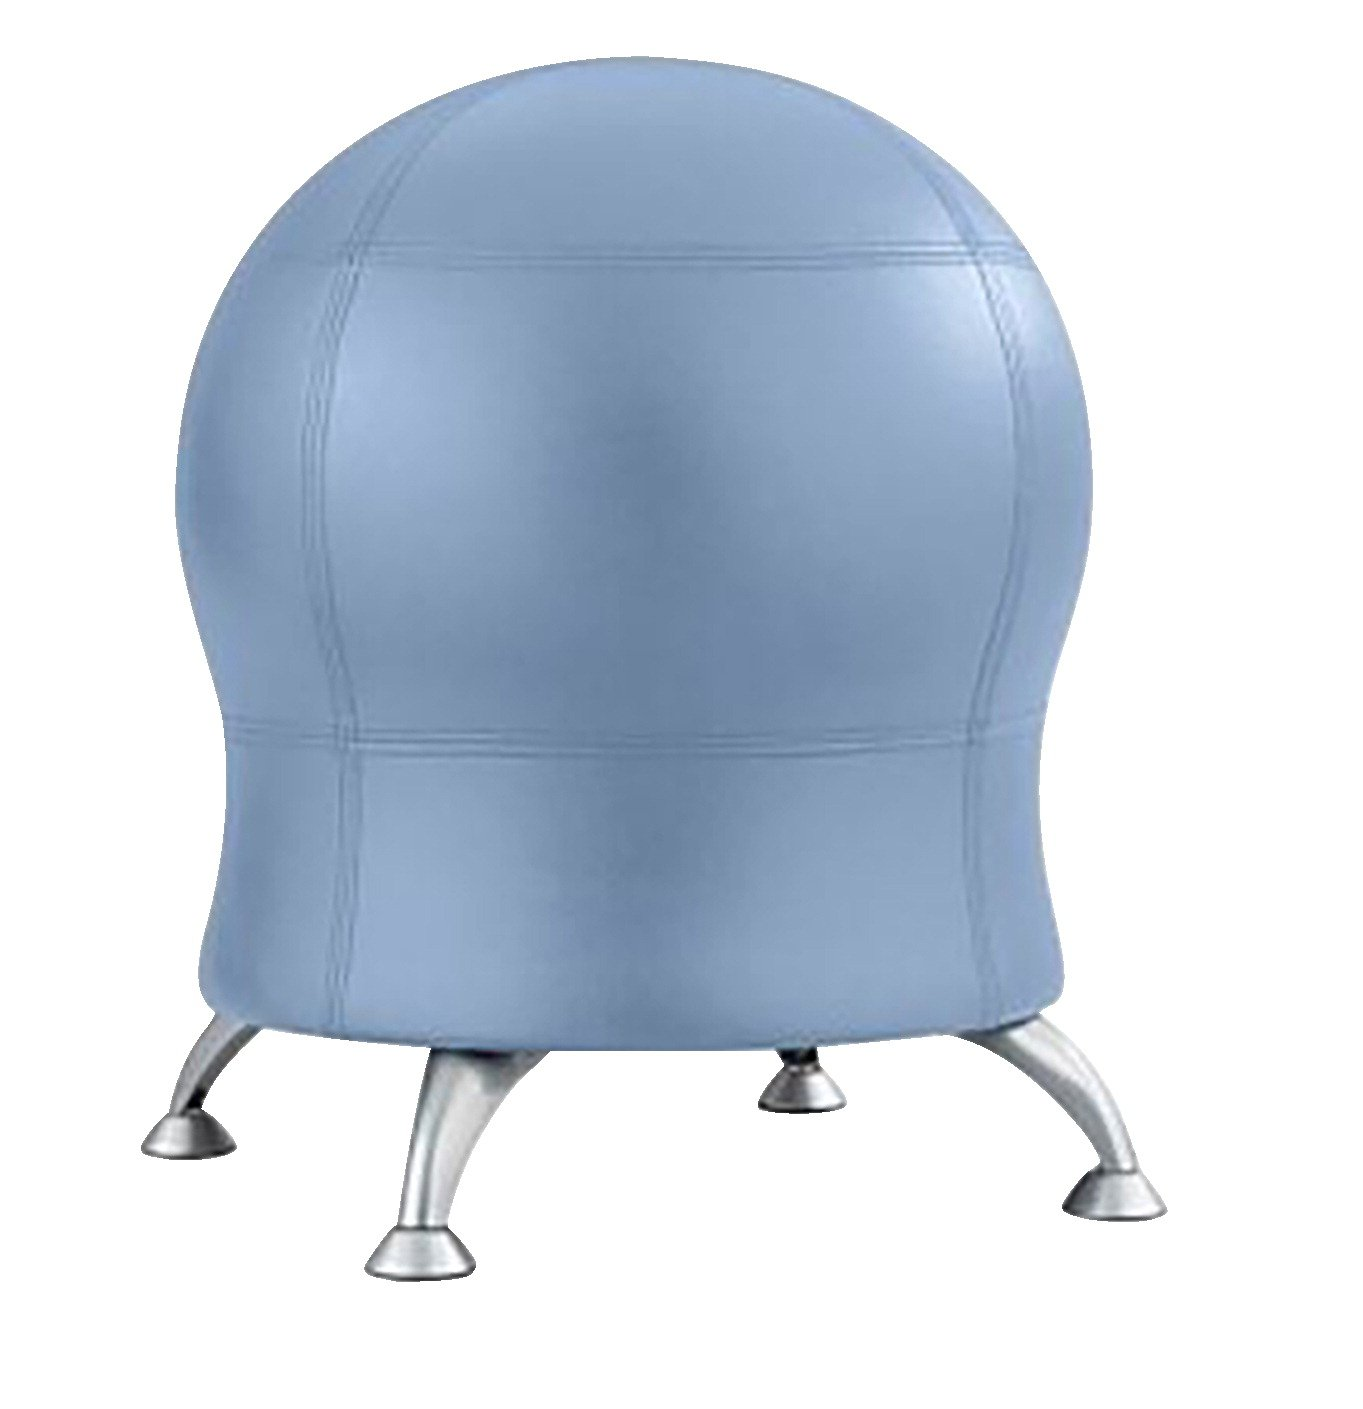 Safco Zenergy Vinyl Ball Chair, 22-1/2 x 22-1/2 x 23 Inches, Ocean by Safco